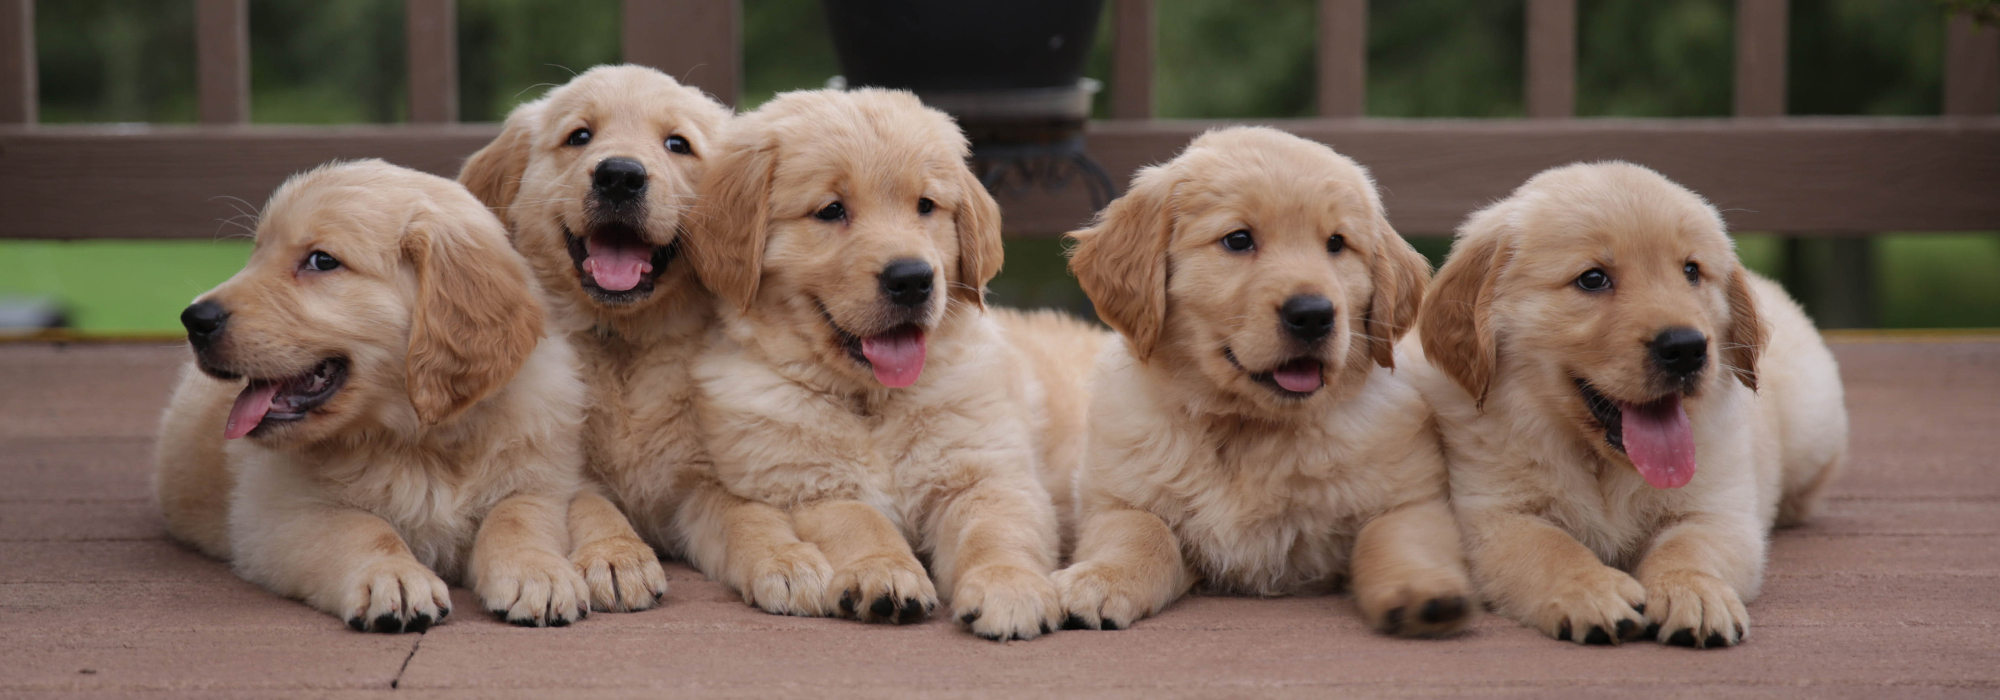 Dogwood Farms Golden Retrievers